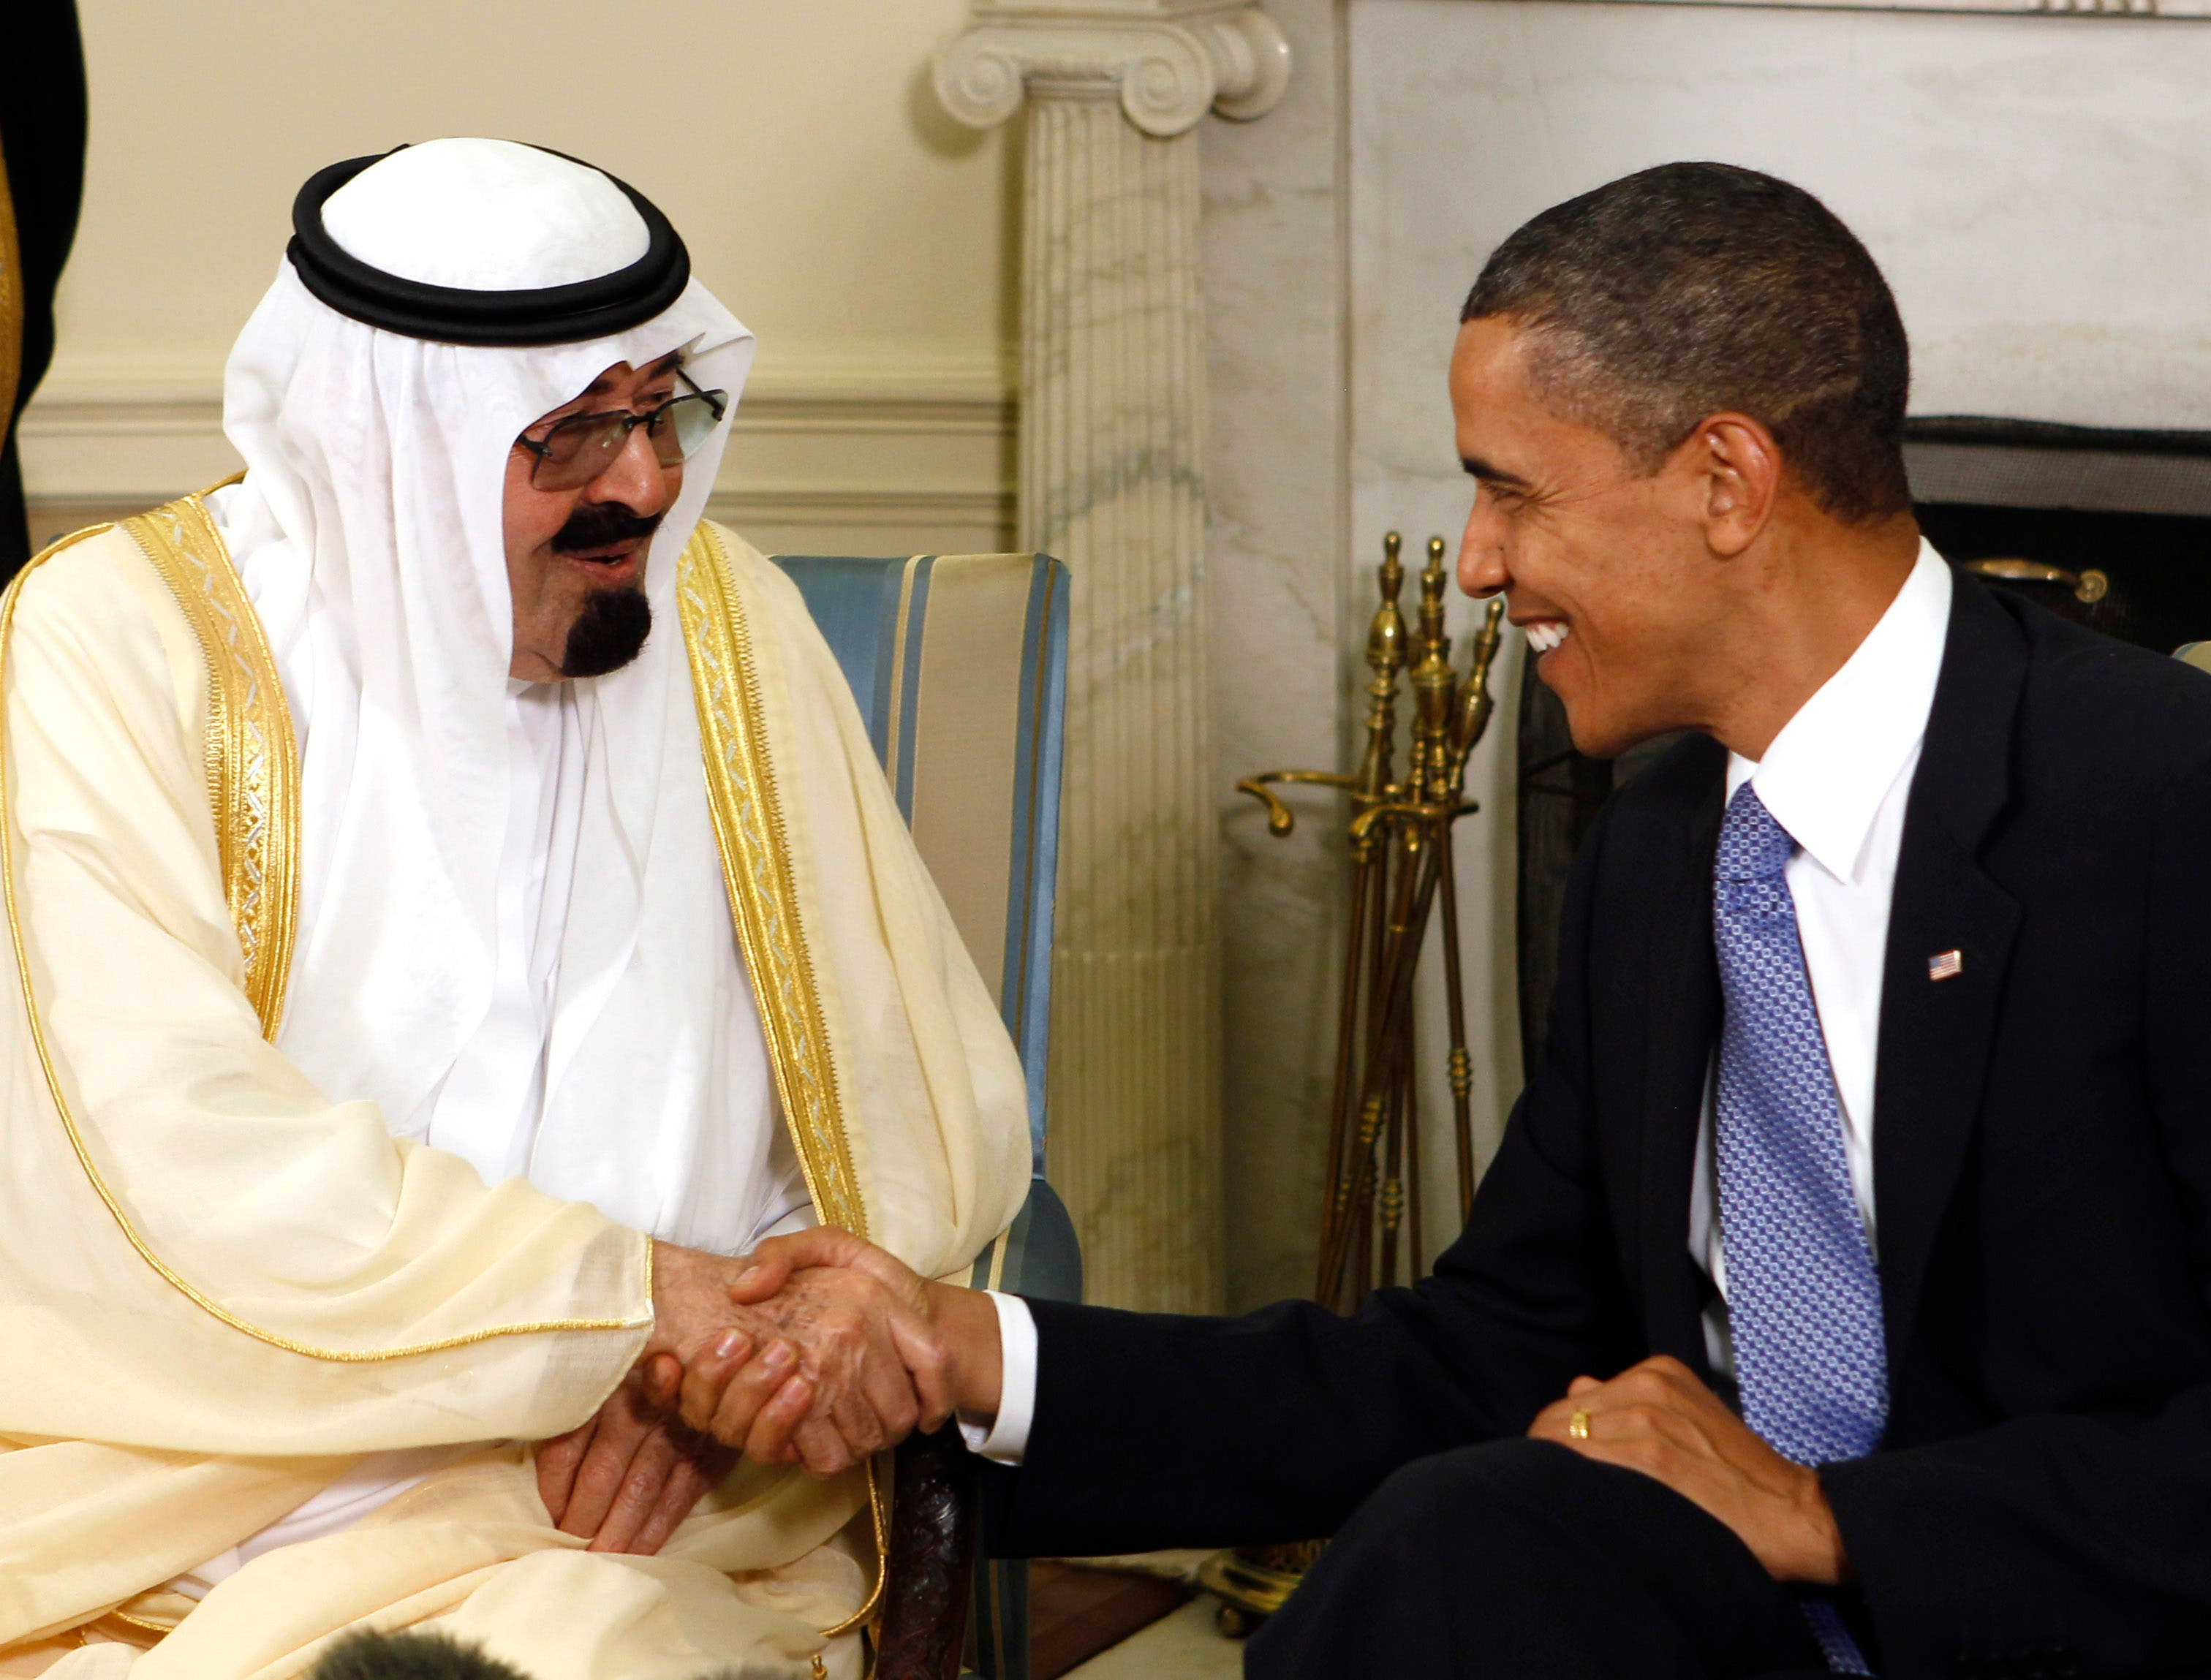 U.S. President Barack Obama (R) meets with King Abdullah of Saudi Arabia in the Oval Office of the White House in Washington June 29, 2010 reuters